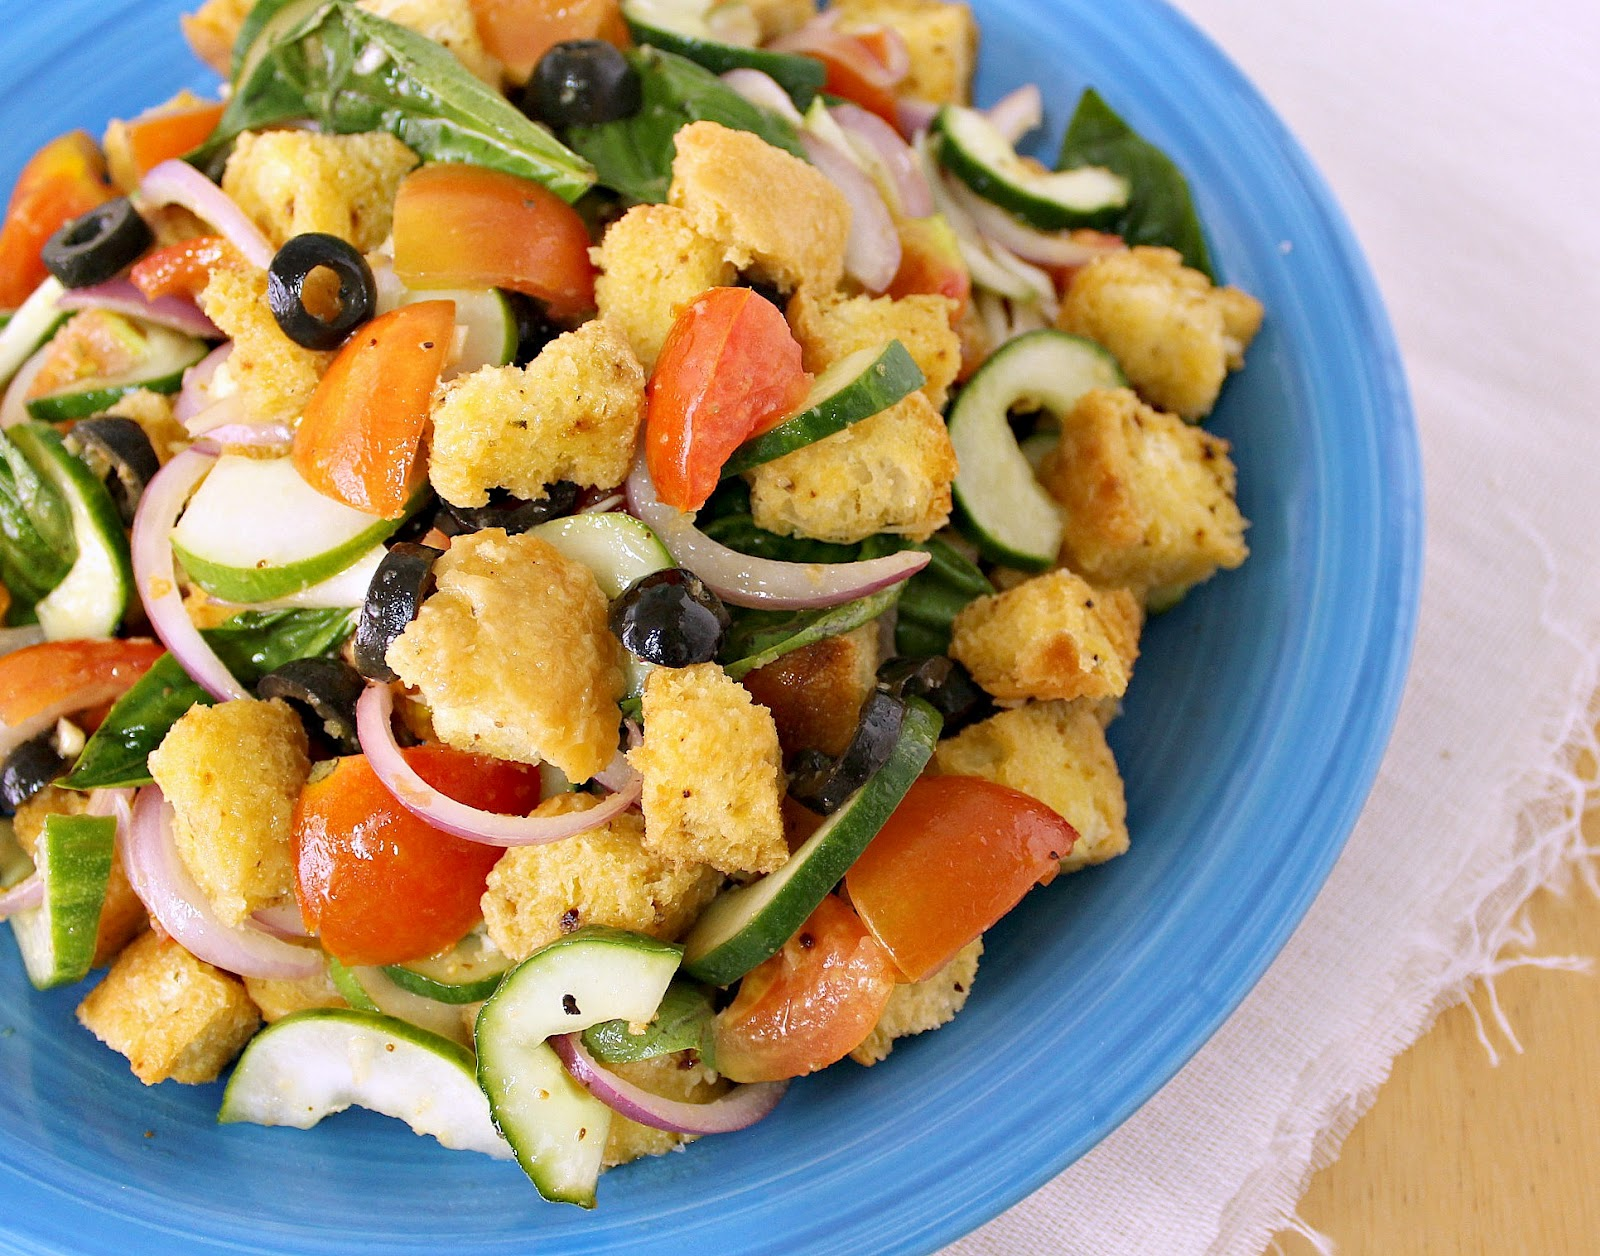 Food wanderings turn stale bread into a healthy salad Barefoot contessa panzanella